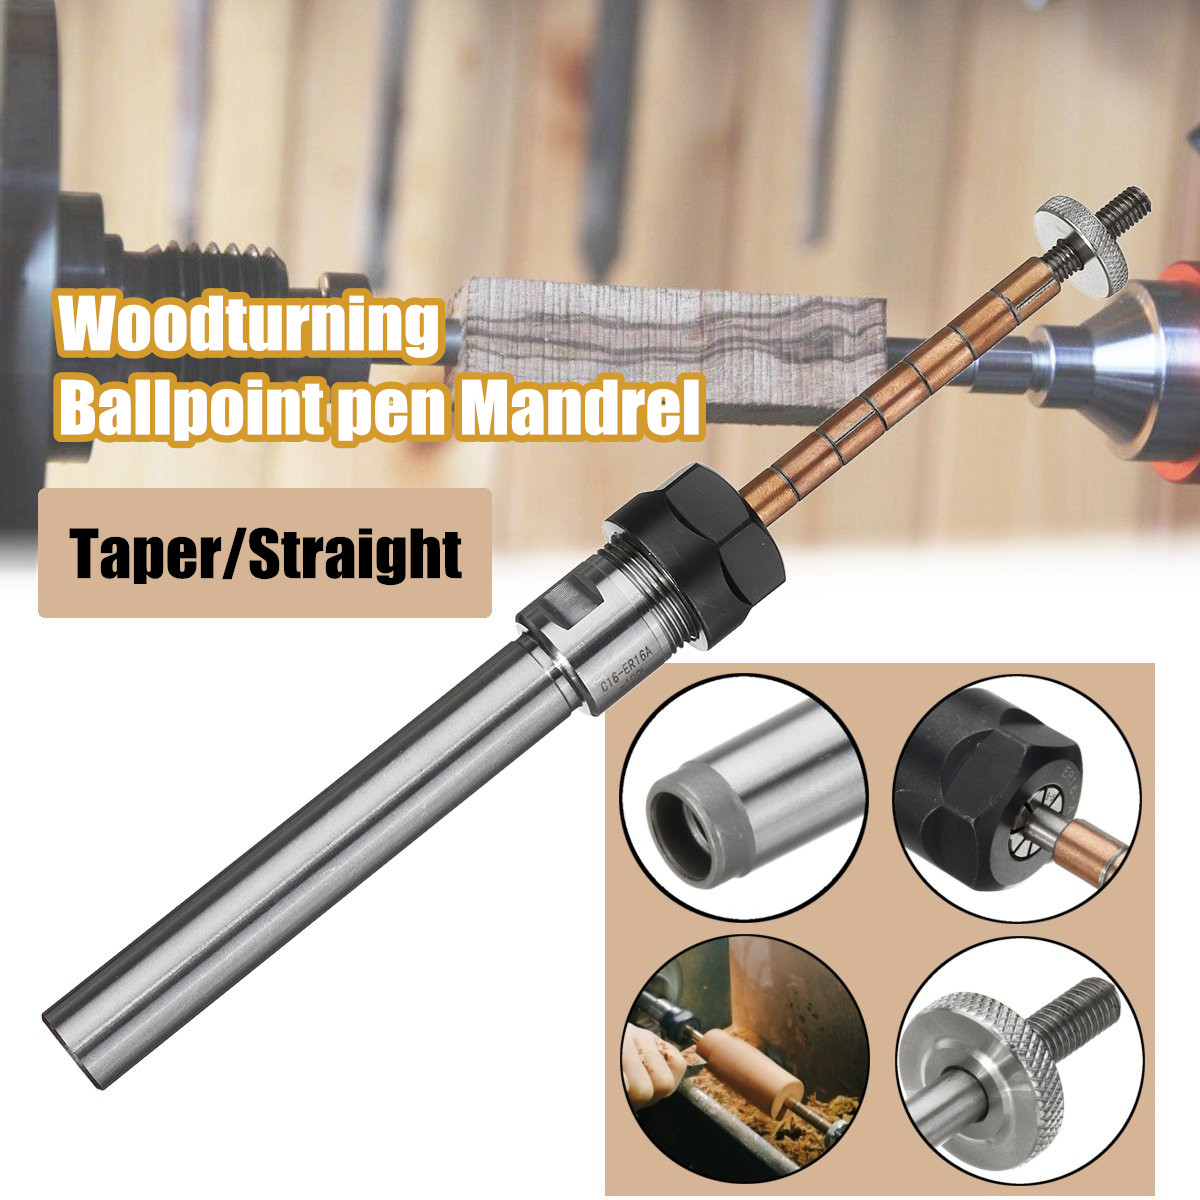 Rotarys Top Lathe Machine Revolving Centre Wood turning Ballpoint pen Mandrel Taper/Straight Shank(China)